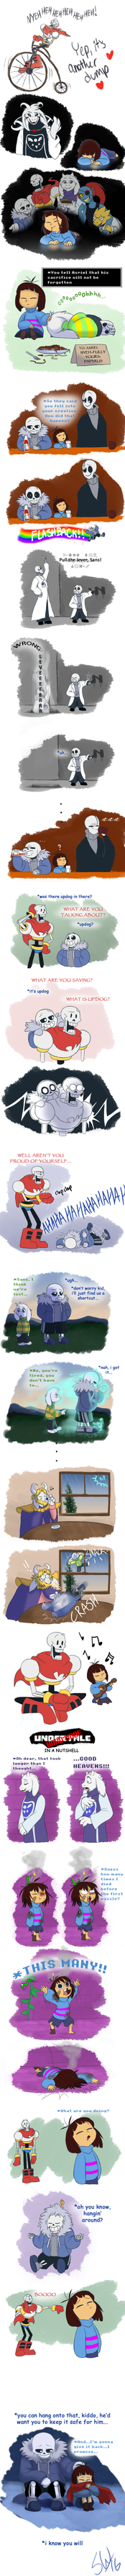 Undertale - Another Dump by TC-96